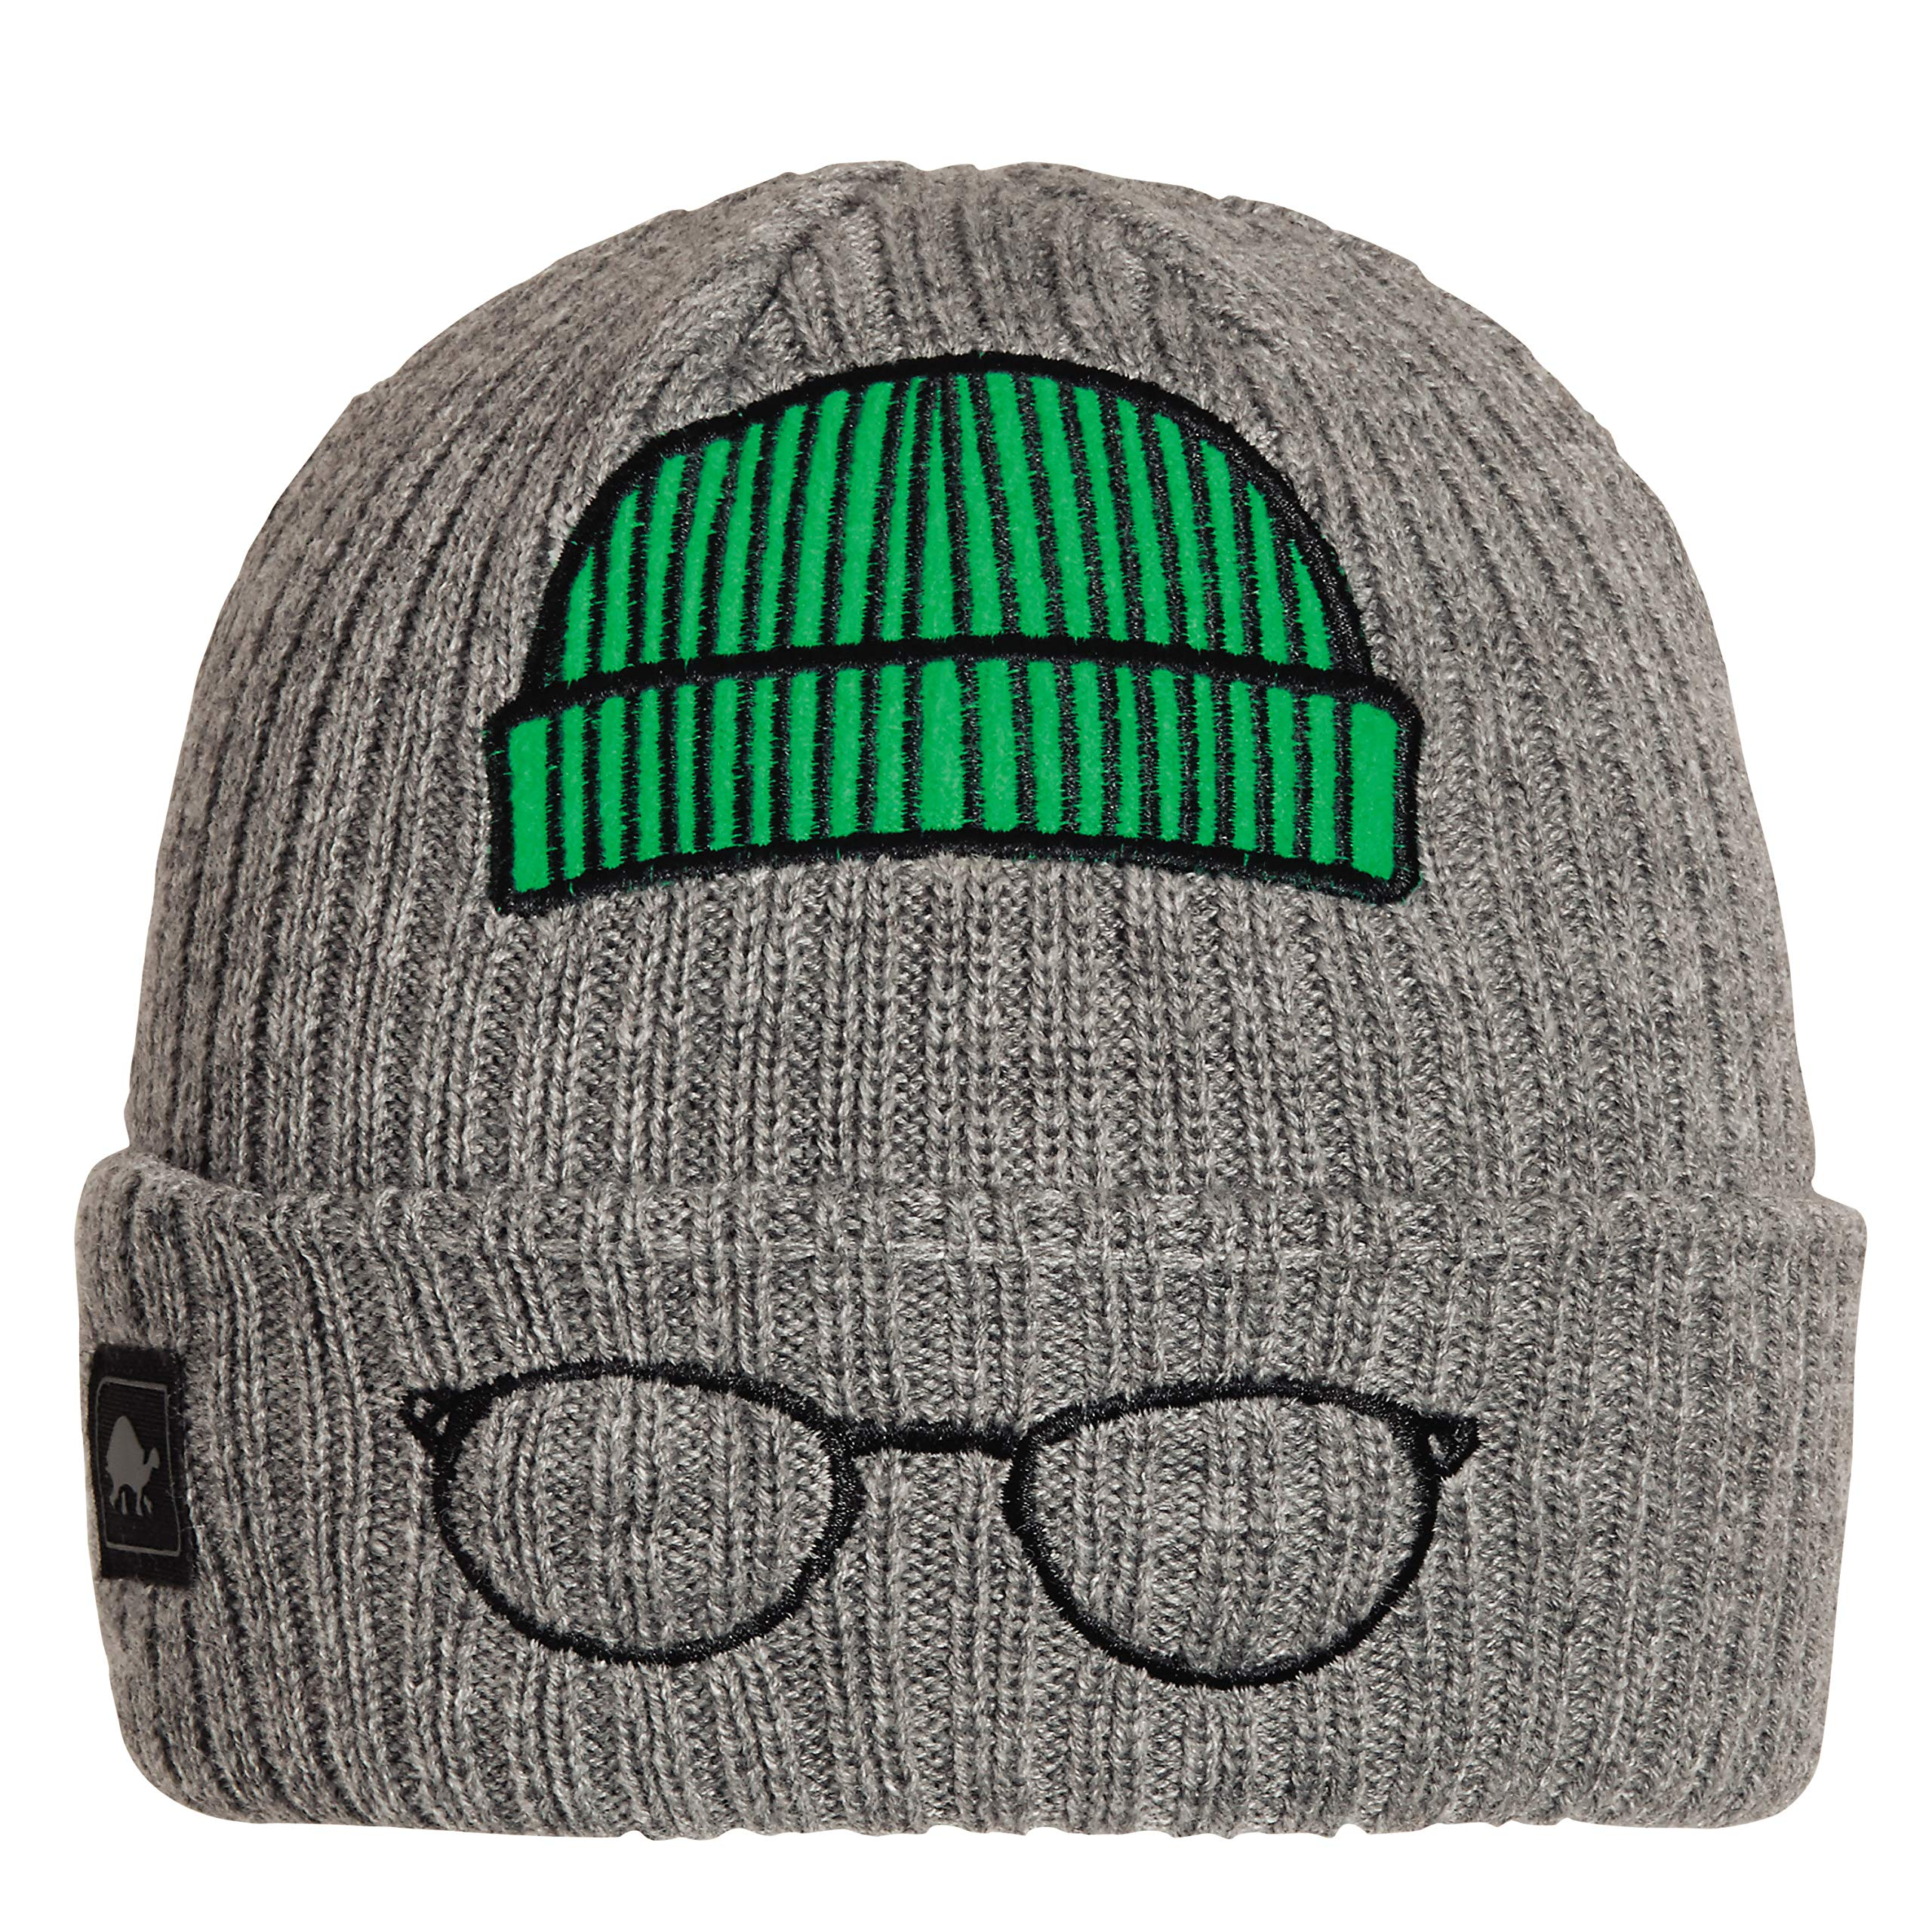 Turtle Fur Kids Lil' Hipster Cuffed Beanie Charcoal